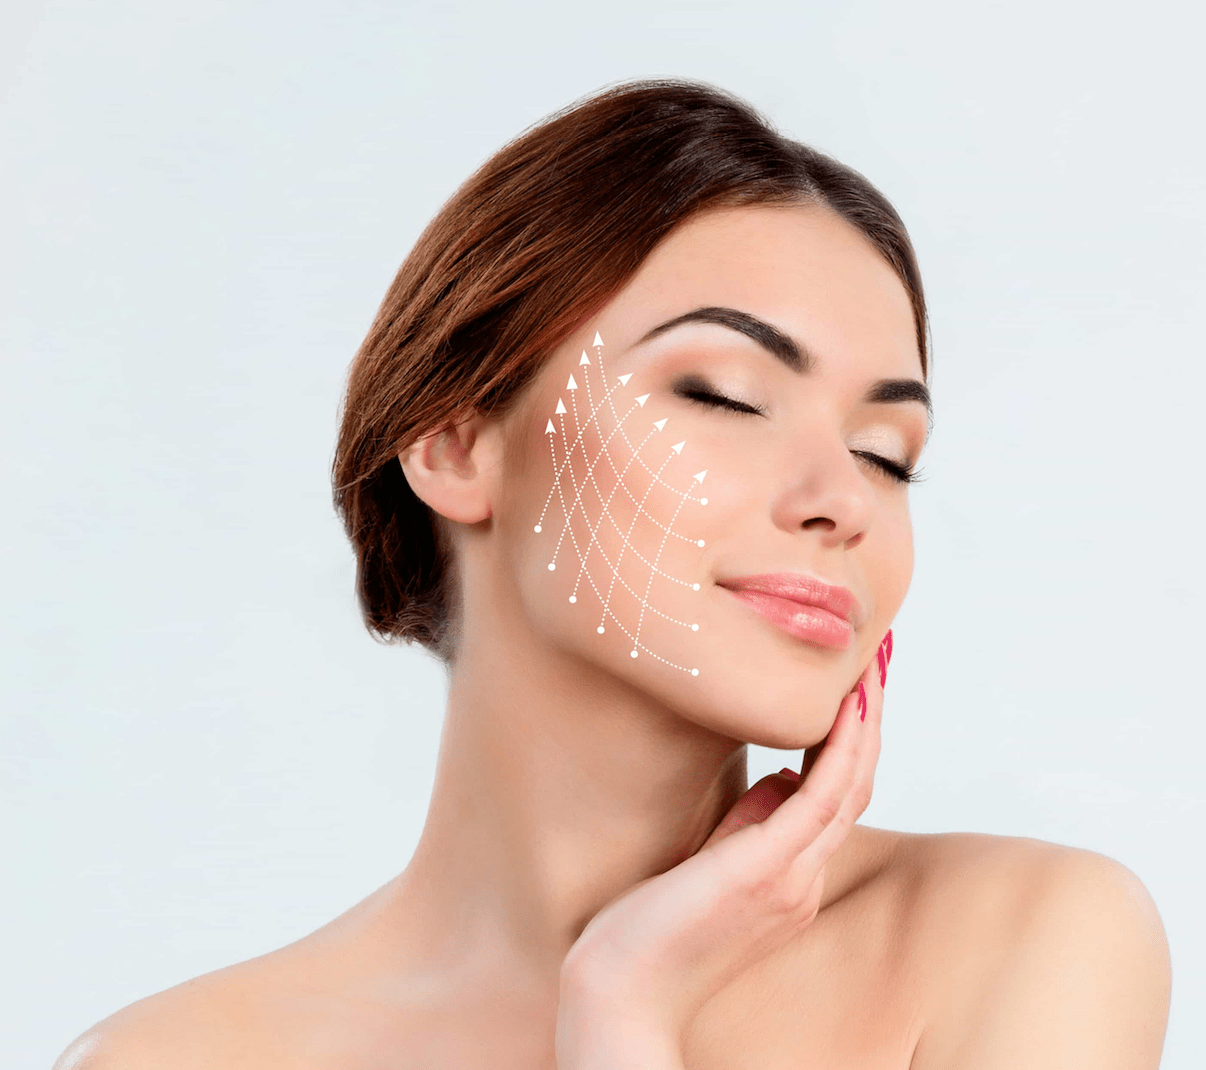 Woman getting micro-needling